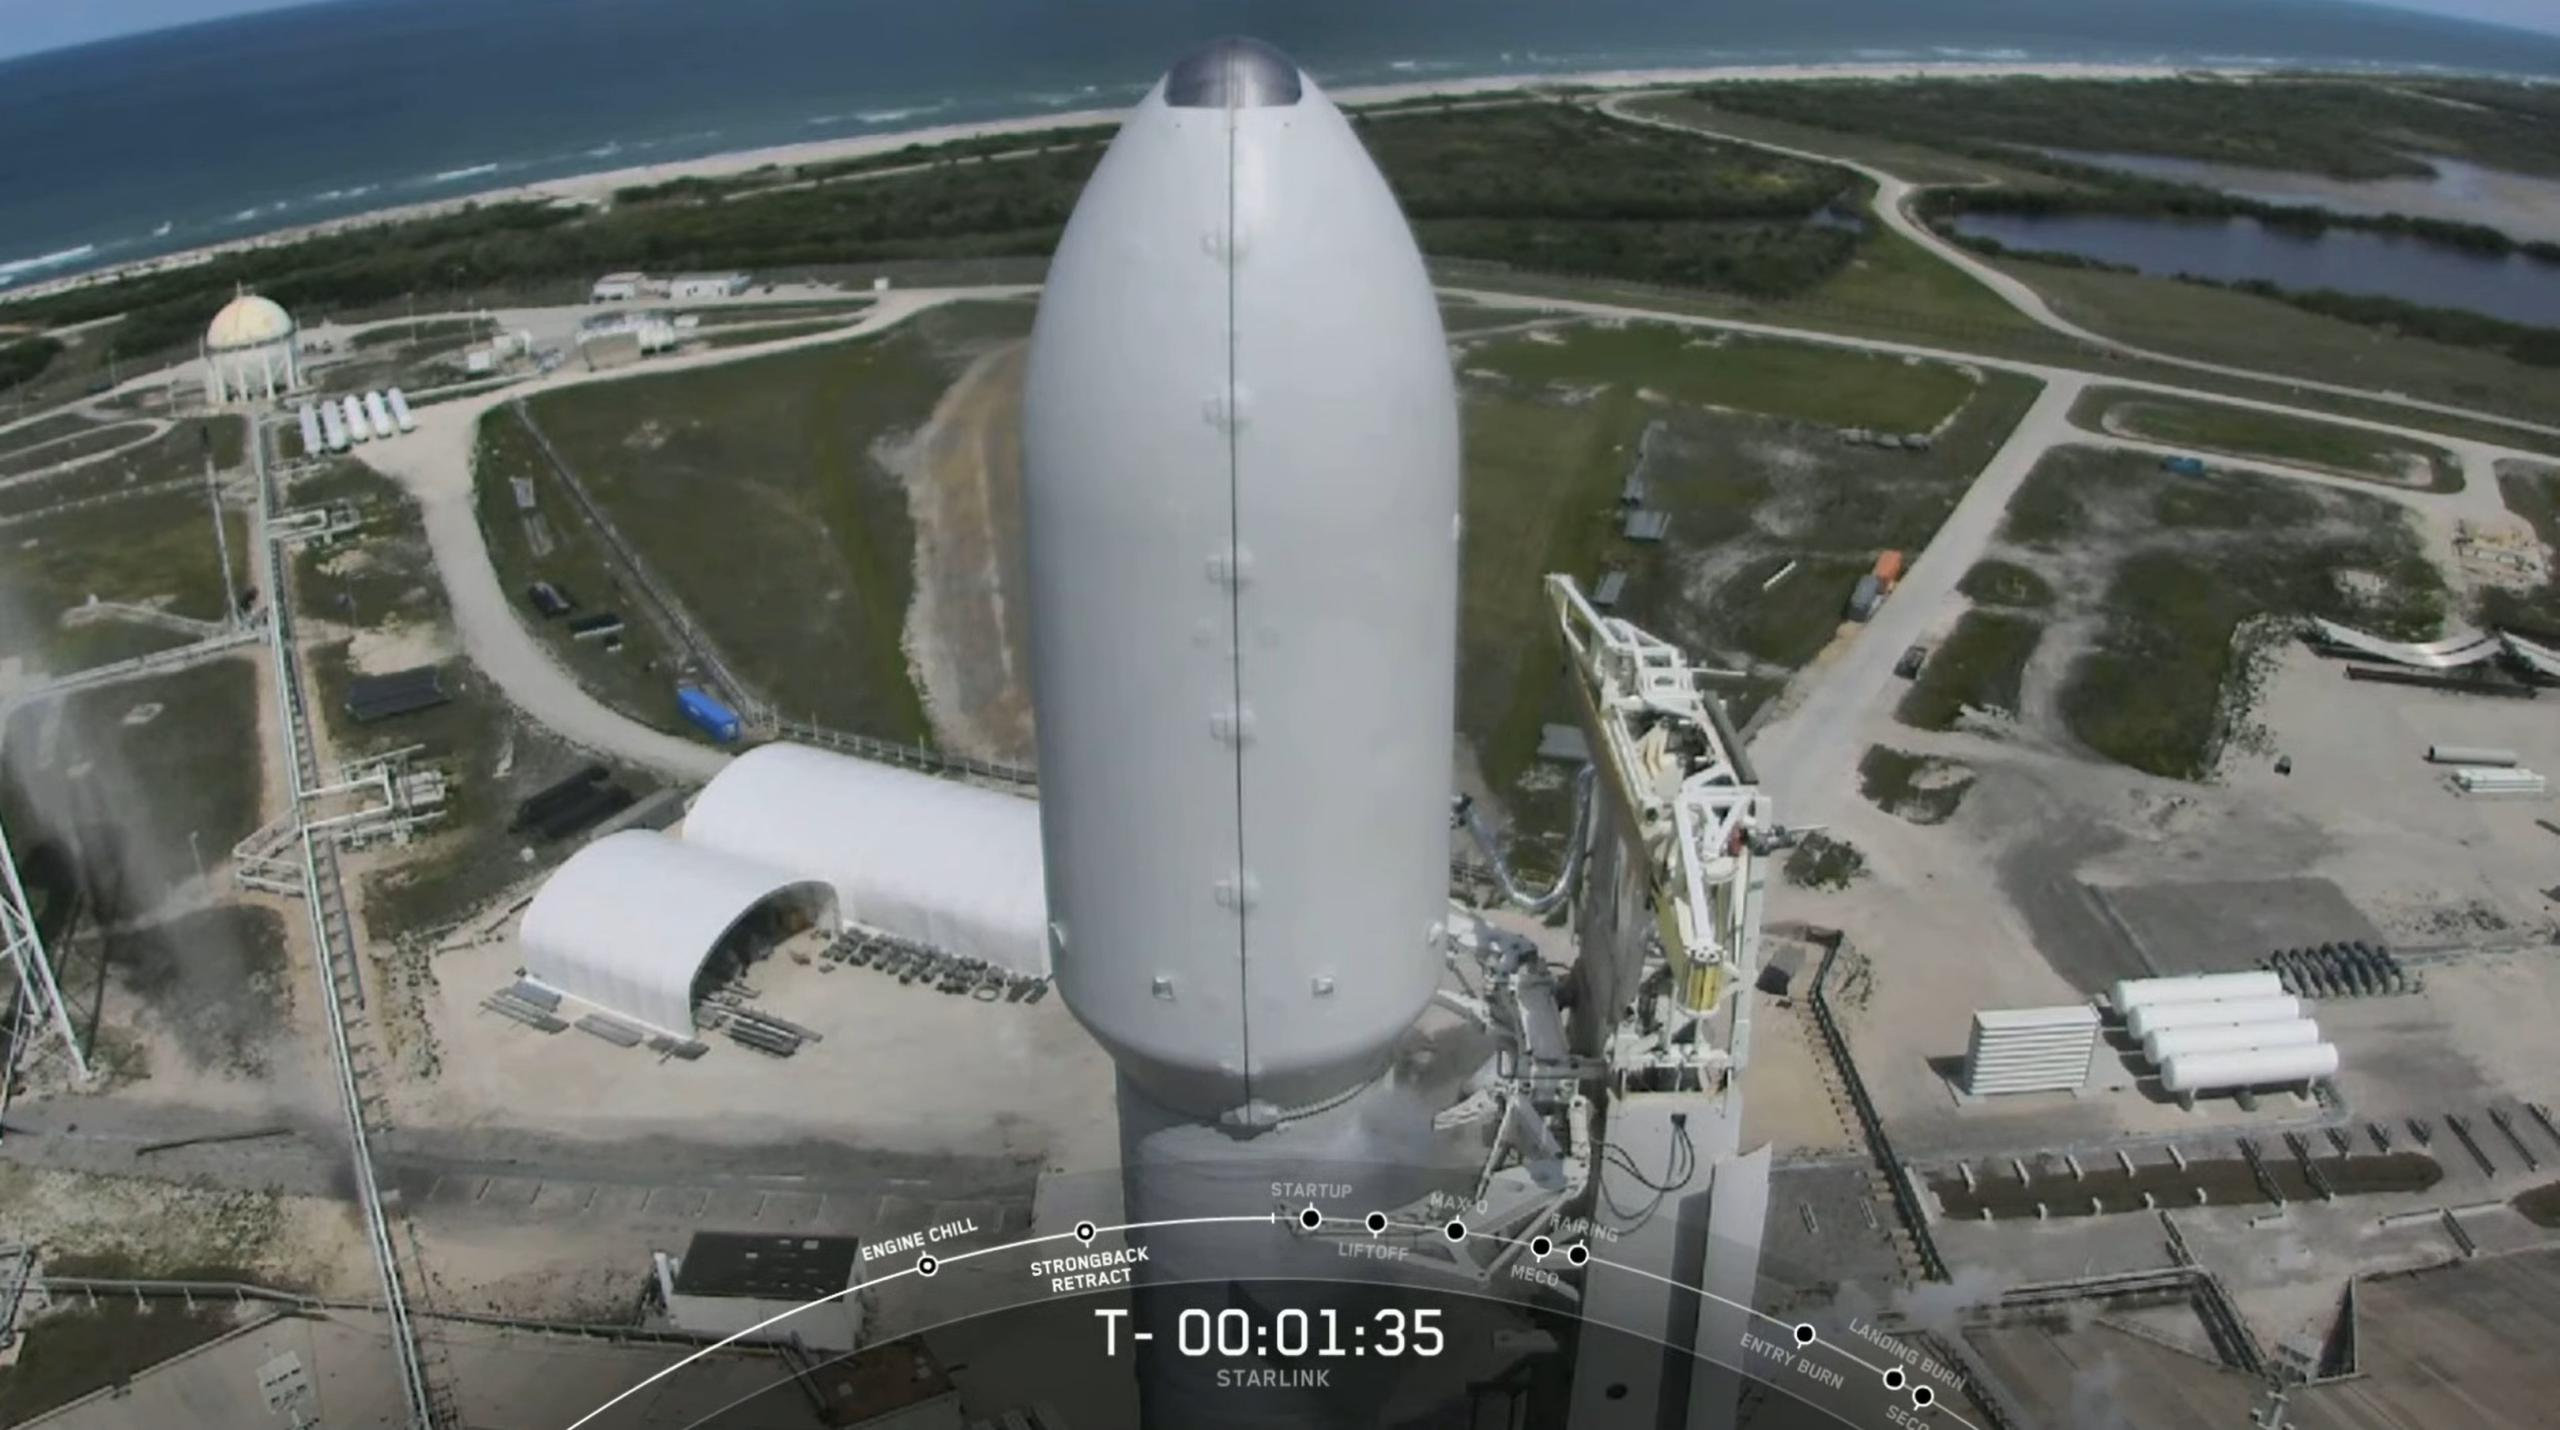 Falcon 9 Starlink 6 042220 (SpaceX) webcast 2 (c)